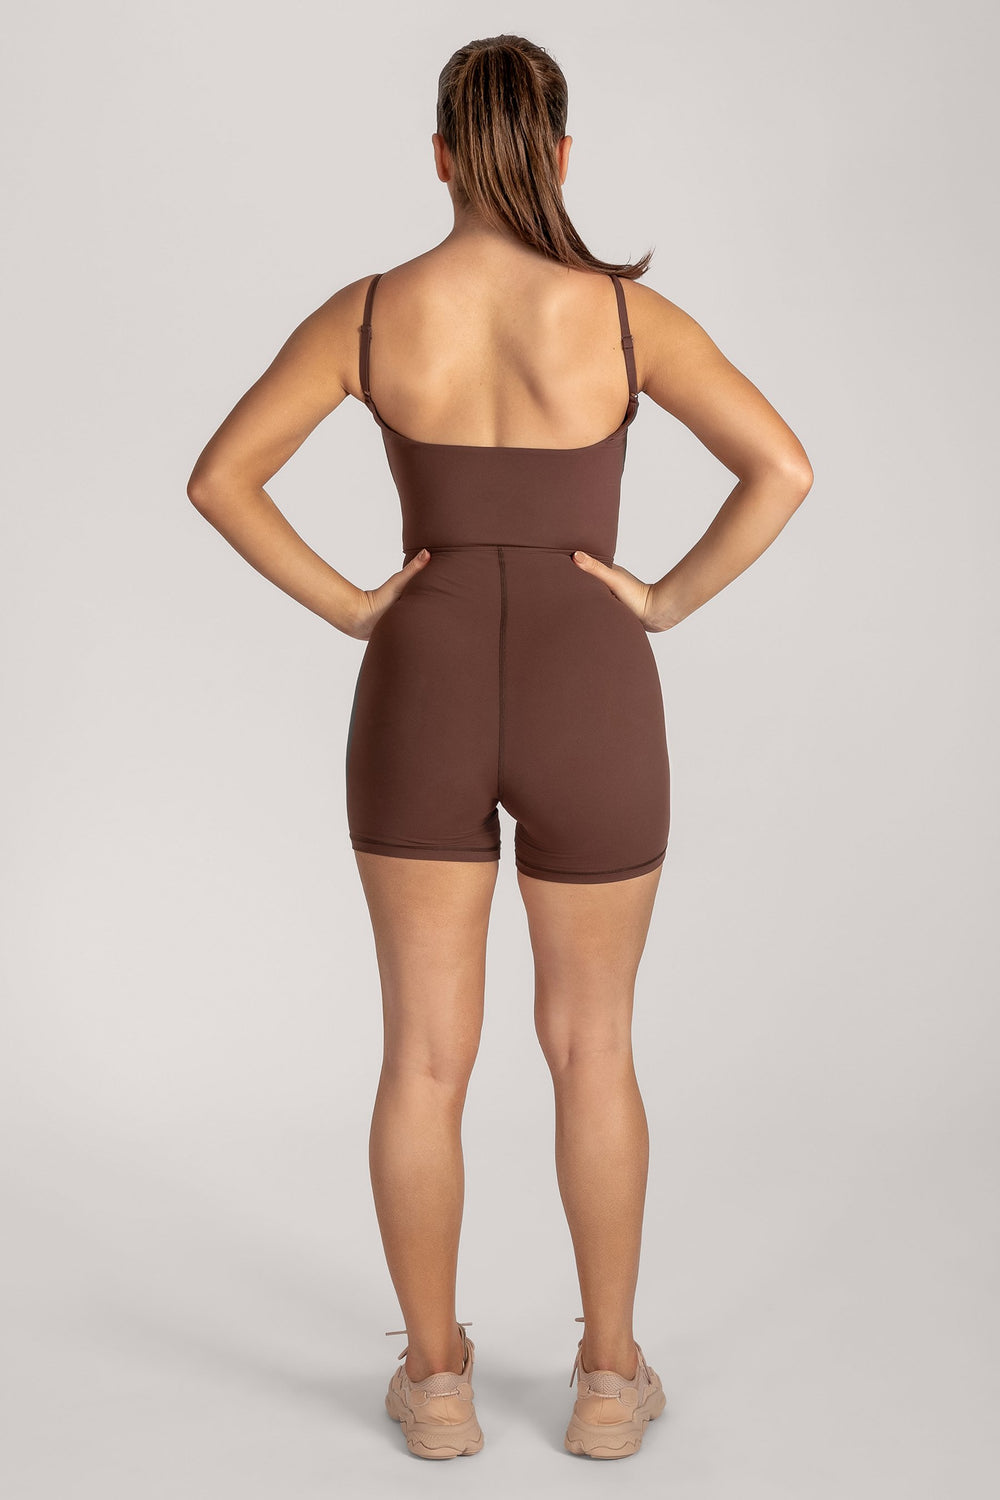 Asteria Thin Strap Low Back Playsuit - Chocolate - MESHKI